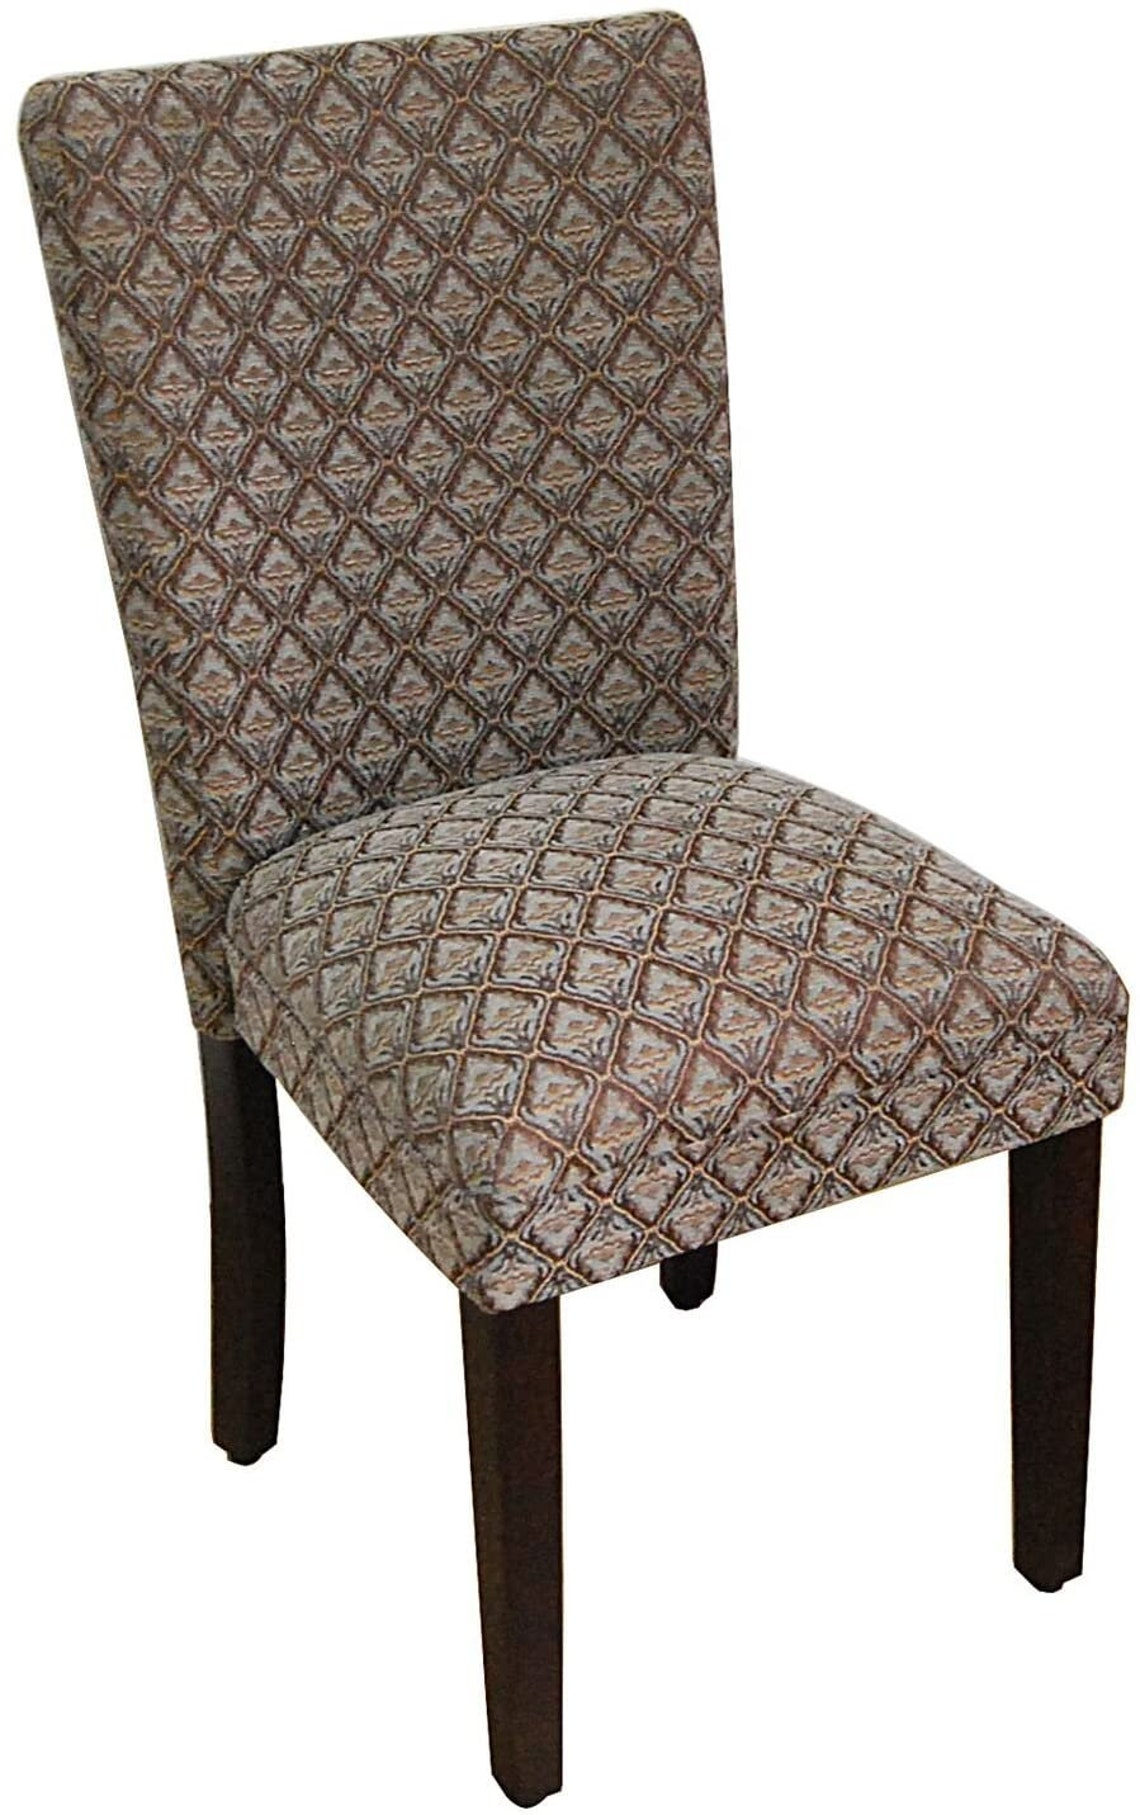 Art Deco Parsons Classic Upholstered Accent Dining Chair, Single Pack, Blue Damask Element of Class for Dining room Home Decorations Gift